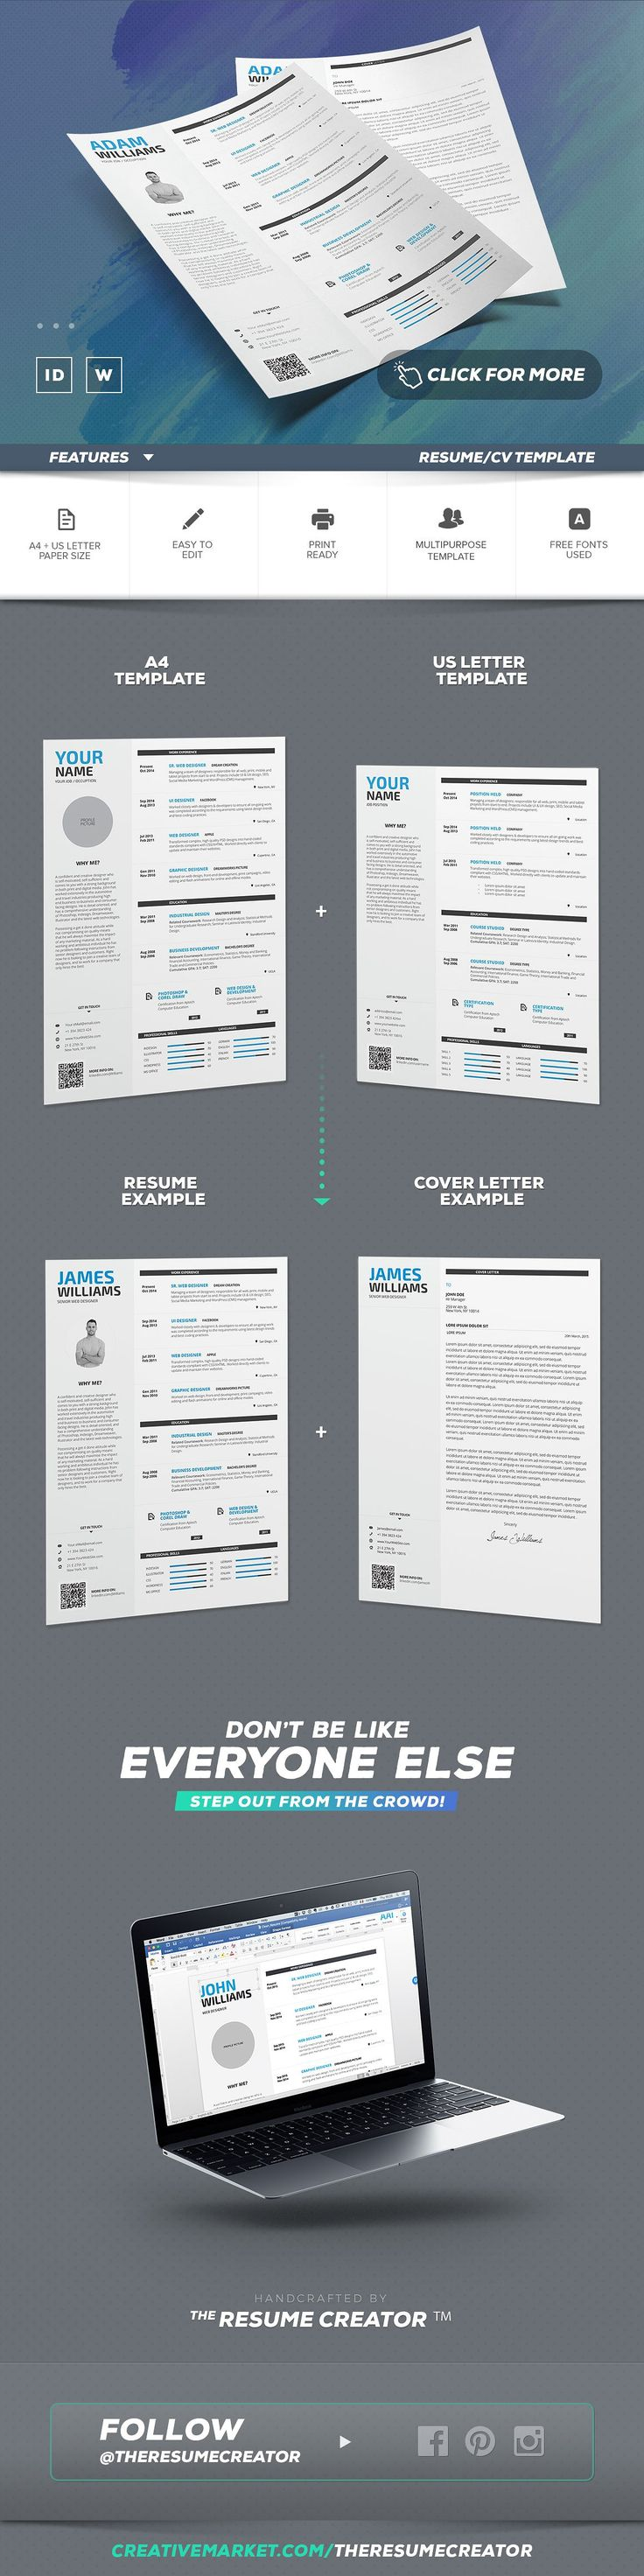 microsoft word letter of resignation%0A Resume   Cv  Word Indesign Template by TheResumeCreator on